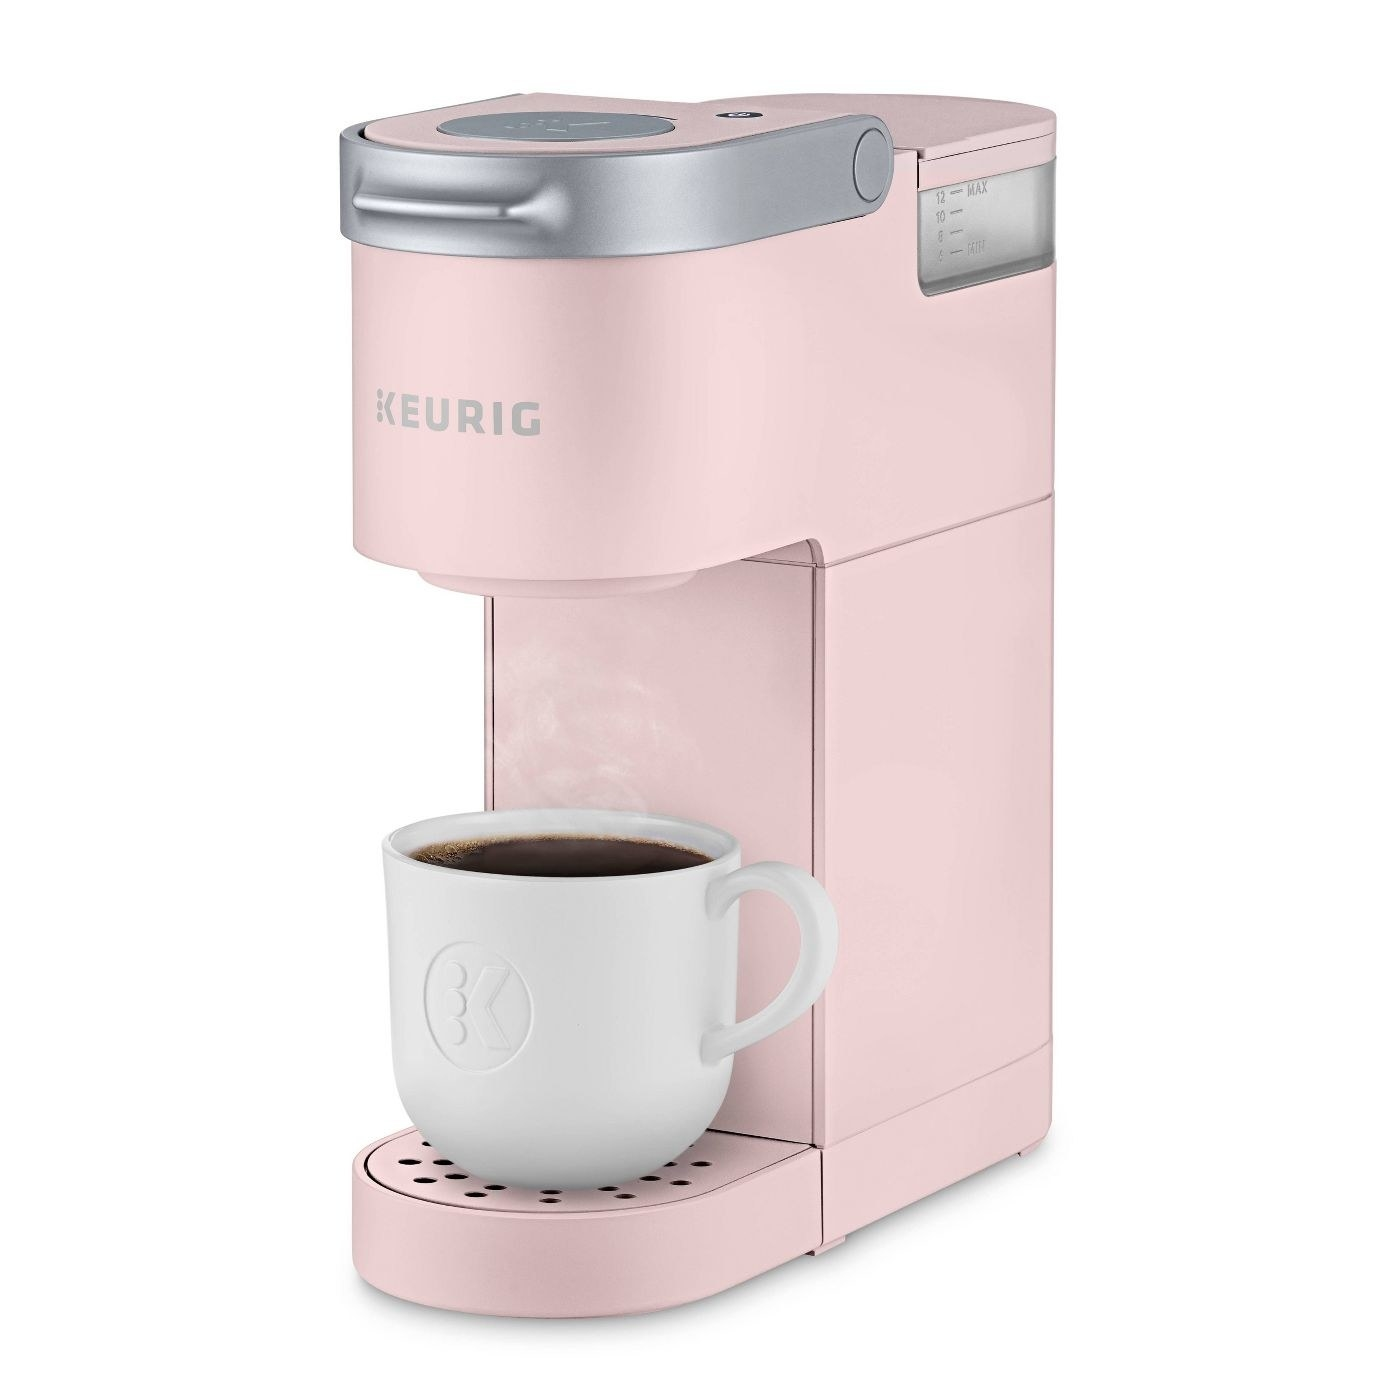 pink keurig k-mini single serve coffee maker with a white mug on it